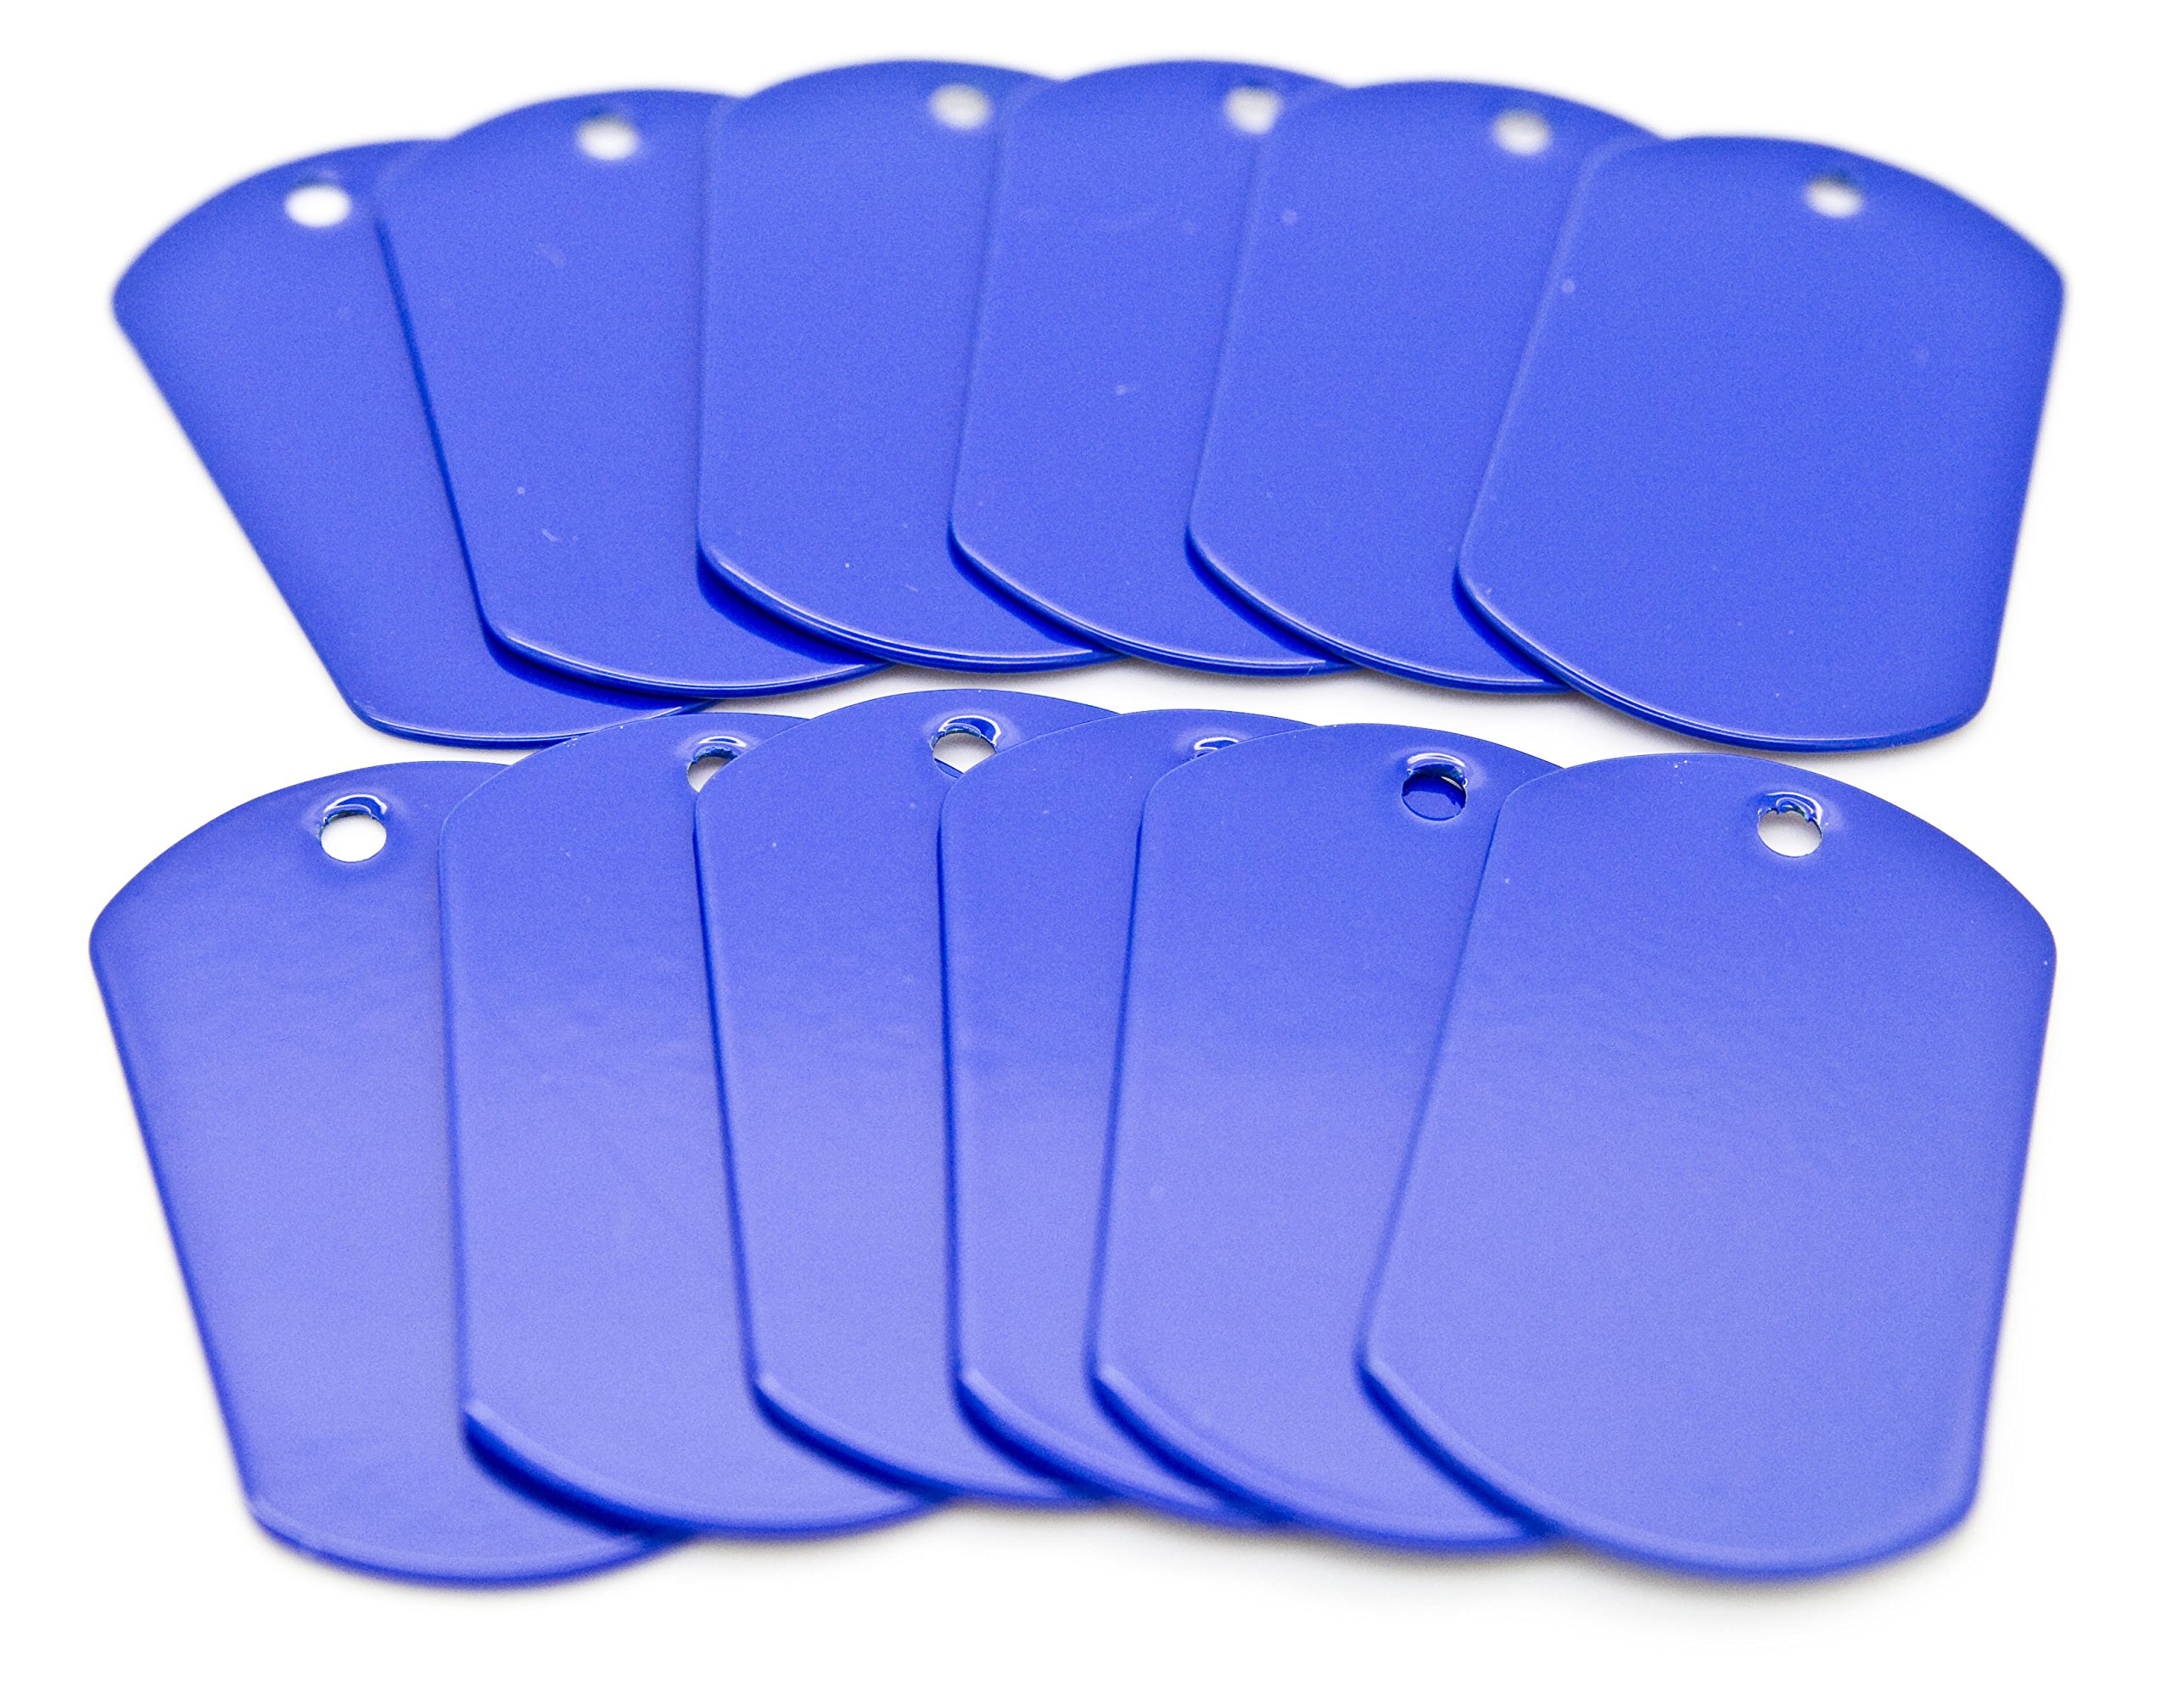 100 pcs Blue Color Stainless Steel Military Spec Dog Tags by OnDepot.com